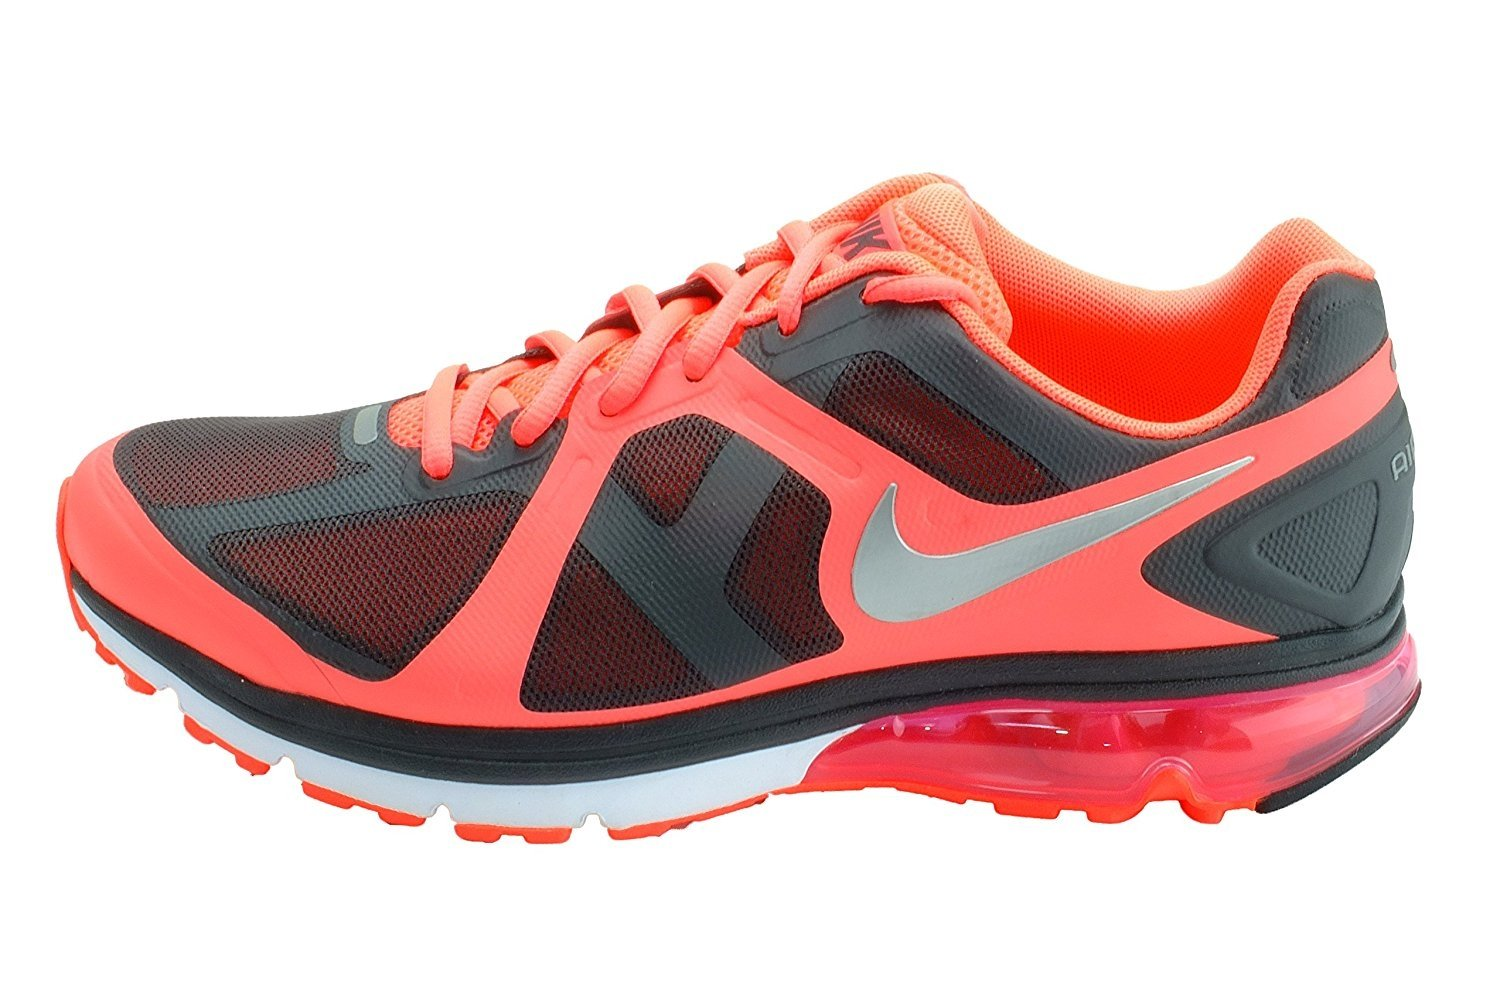 Nike Air Exellerate Size For Women's pink/Black Color Size Exellerate 11.5 c528e0